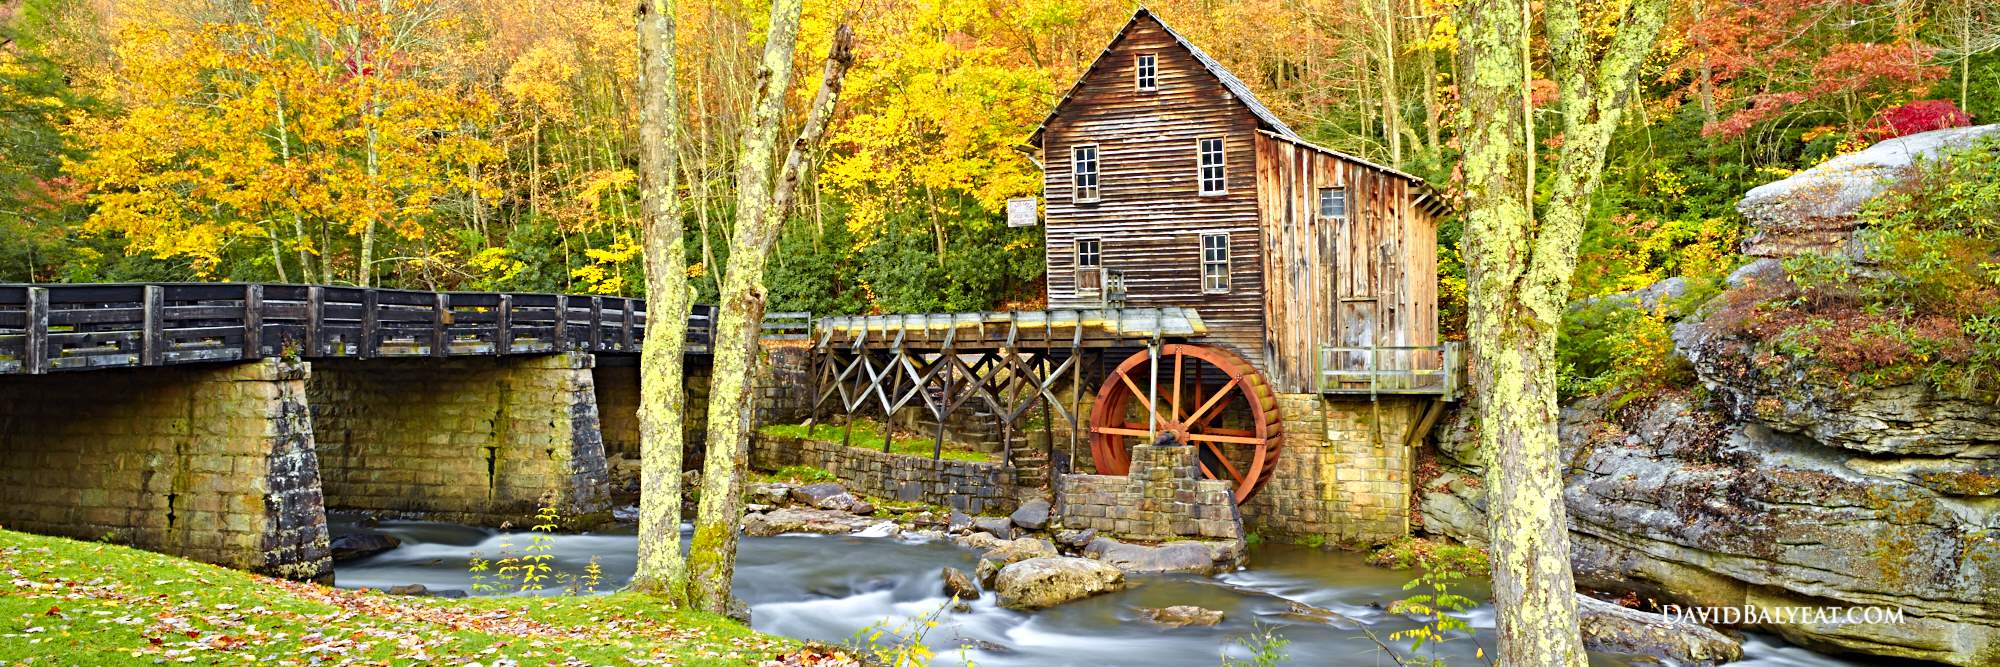 Babcock State Park Panoramic Glade Creek Grist Mill Watermill Autumn Fall Foliage High Definition Hd Photography